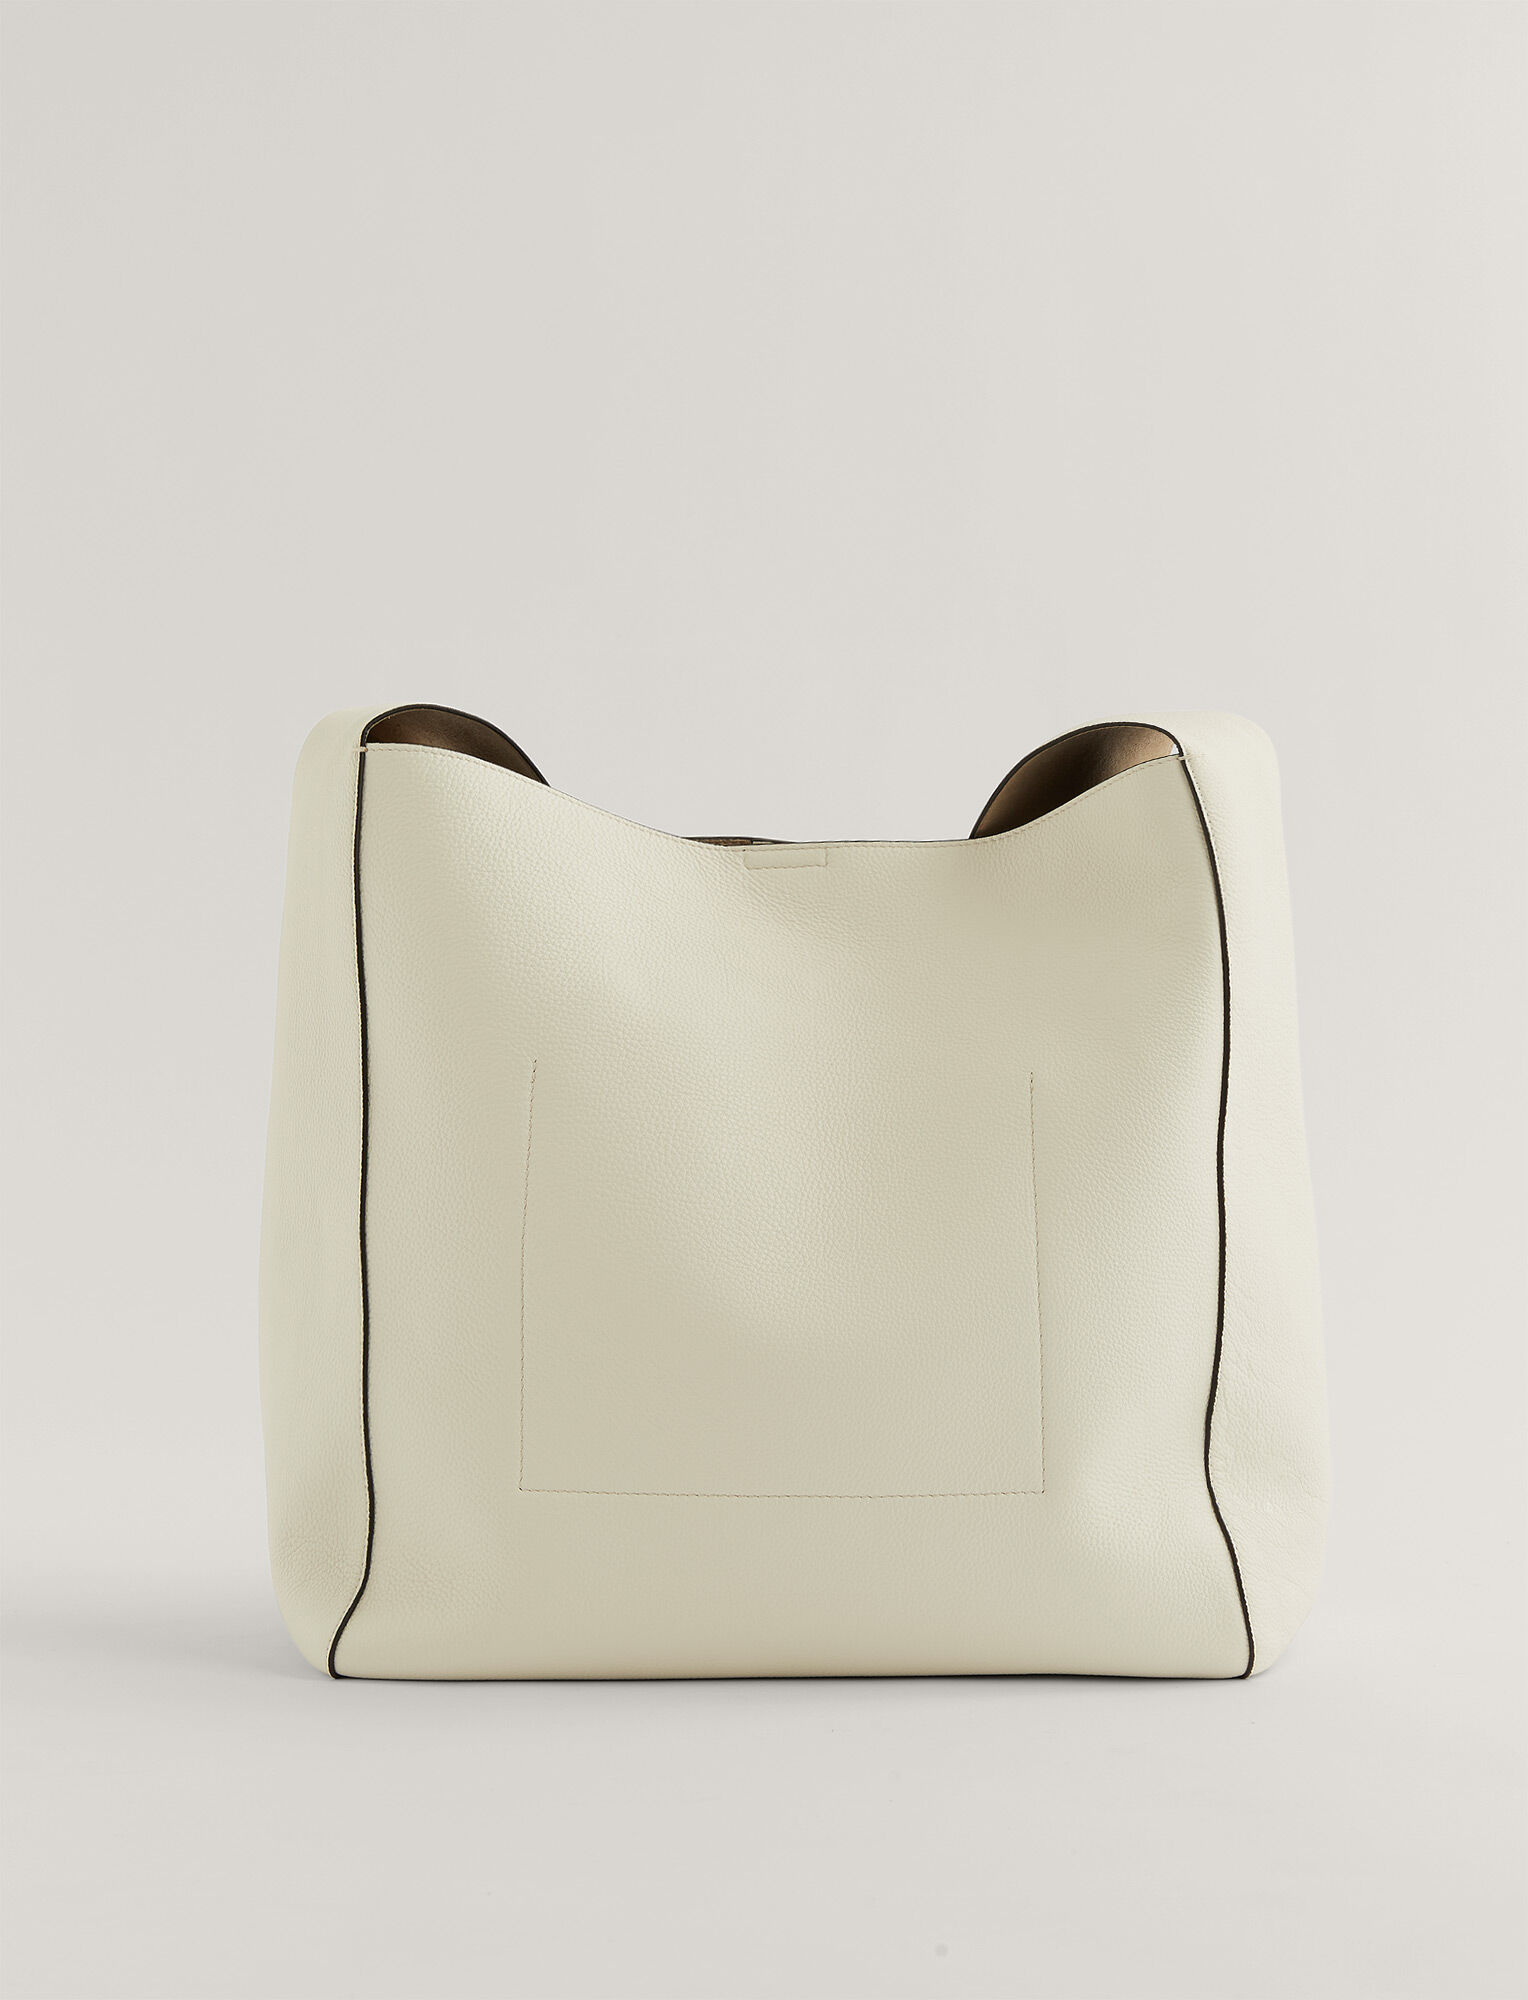 Joseph, Slouch XL Grain Leather Bag, in Off White